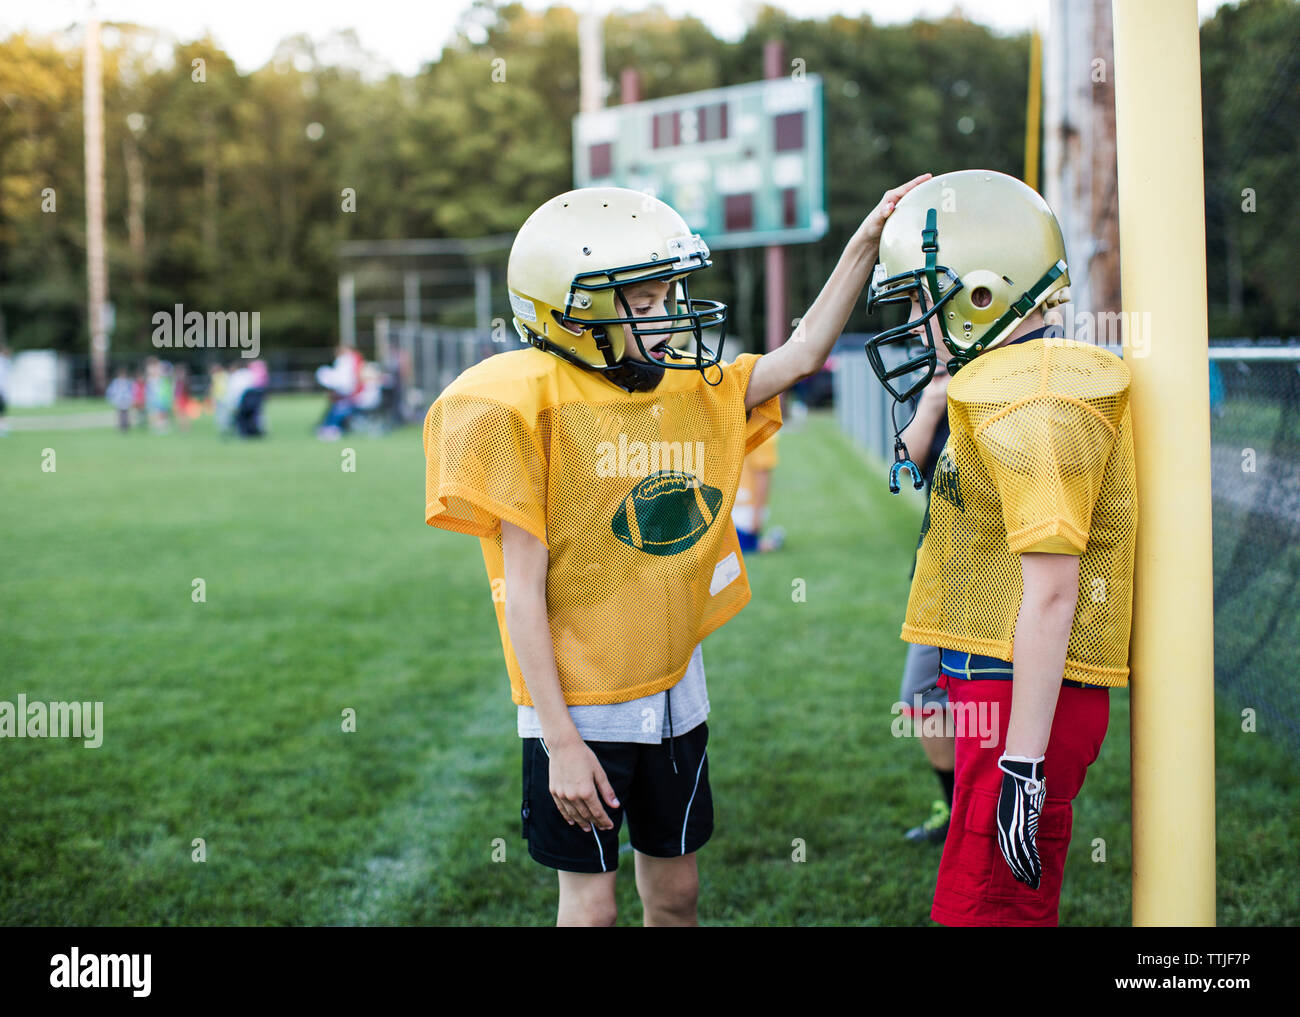 Side view of American football players on field - Stock Image